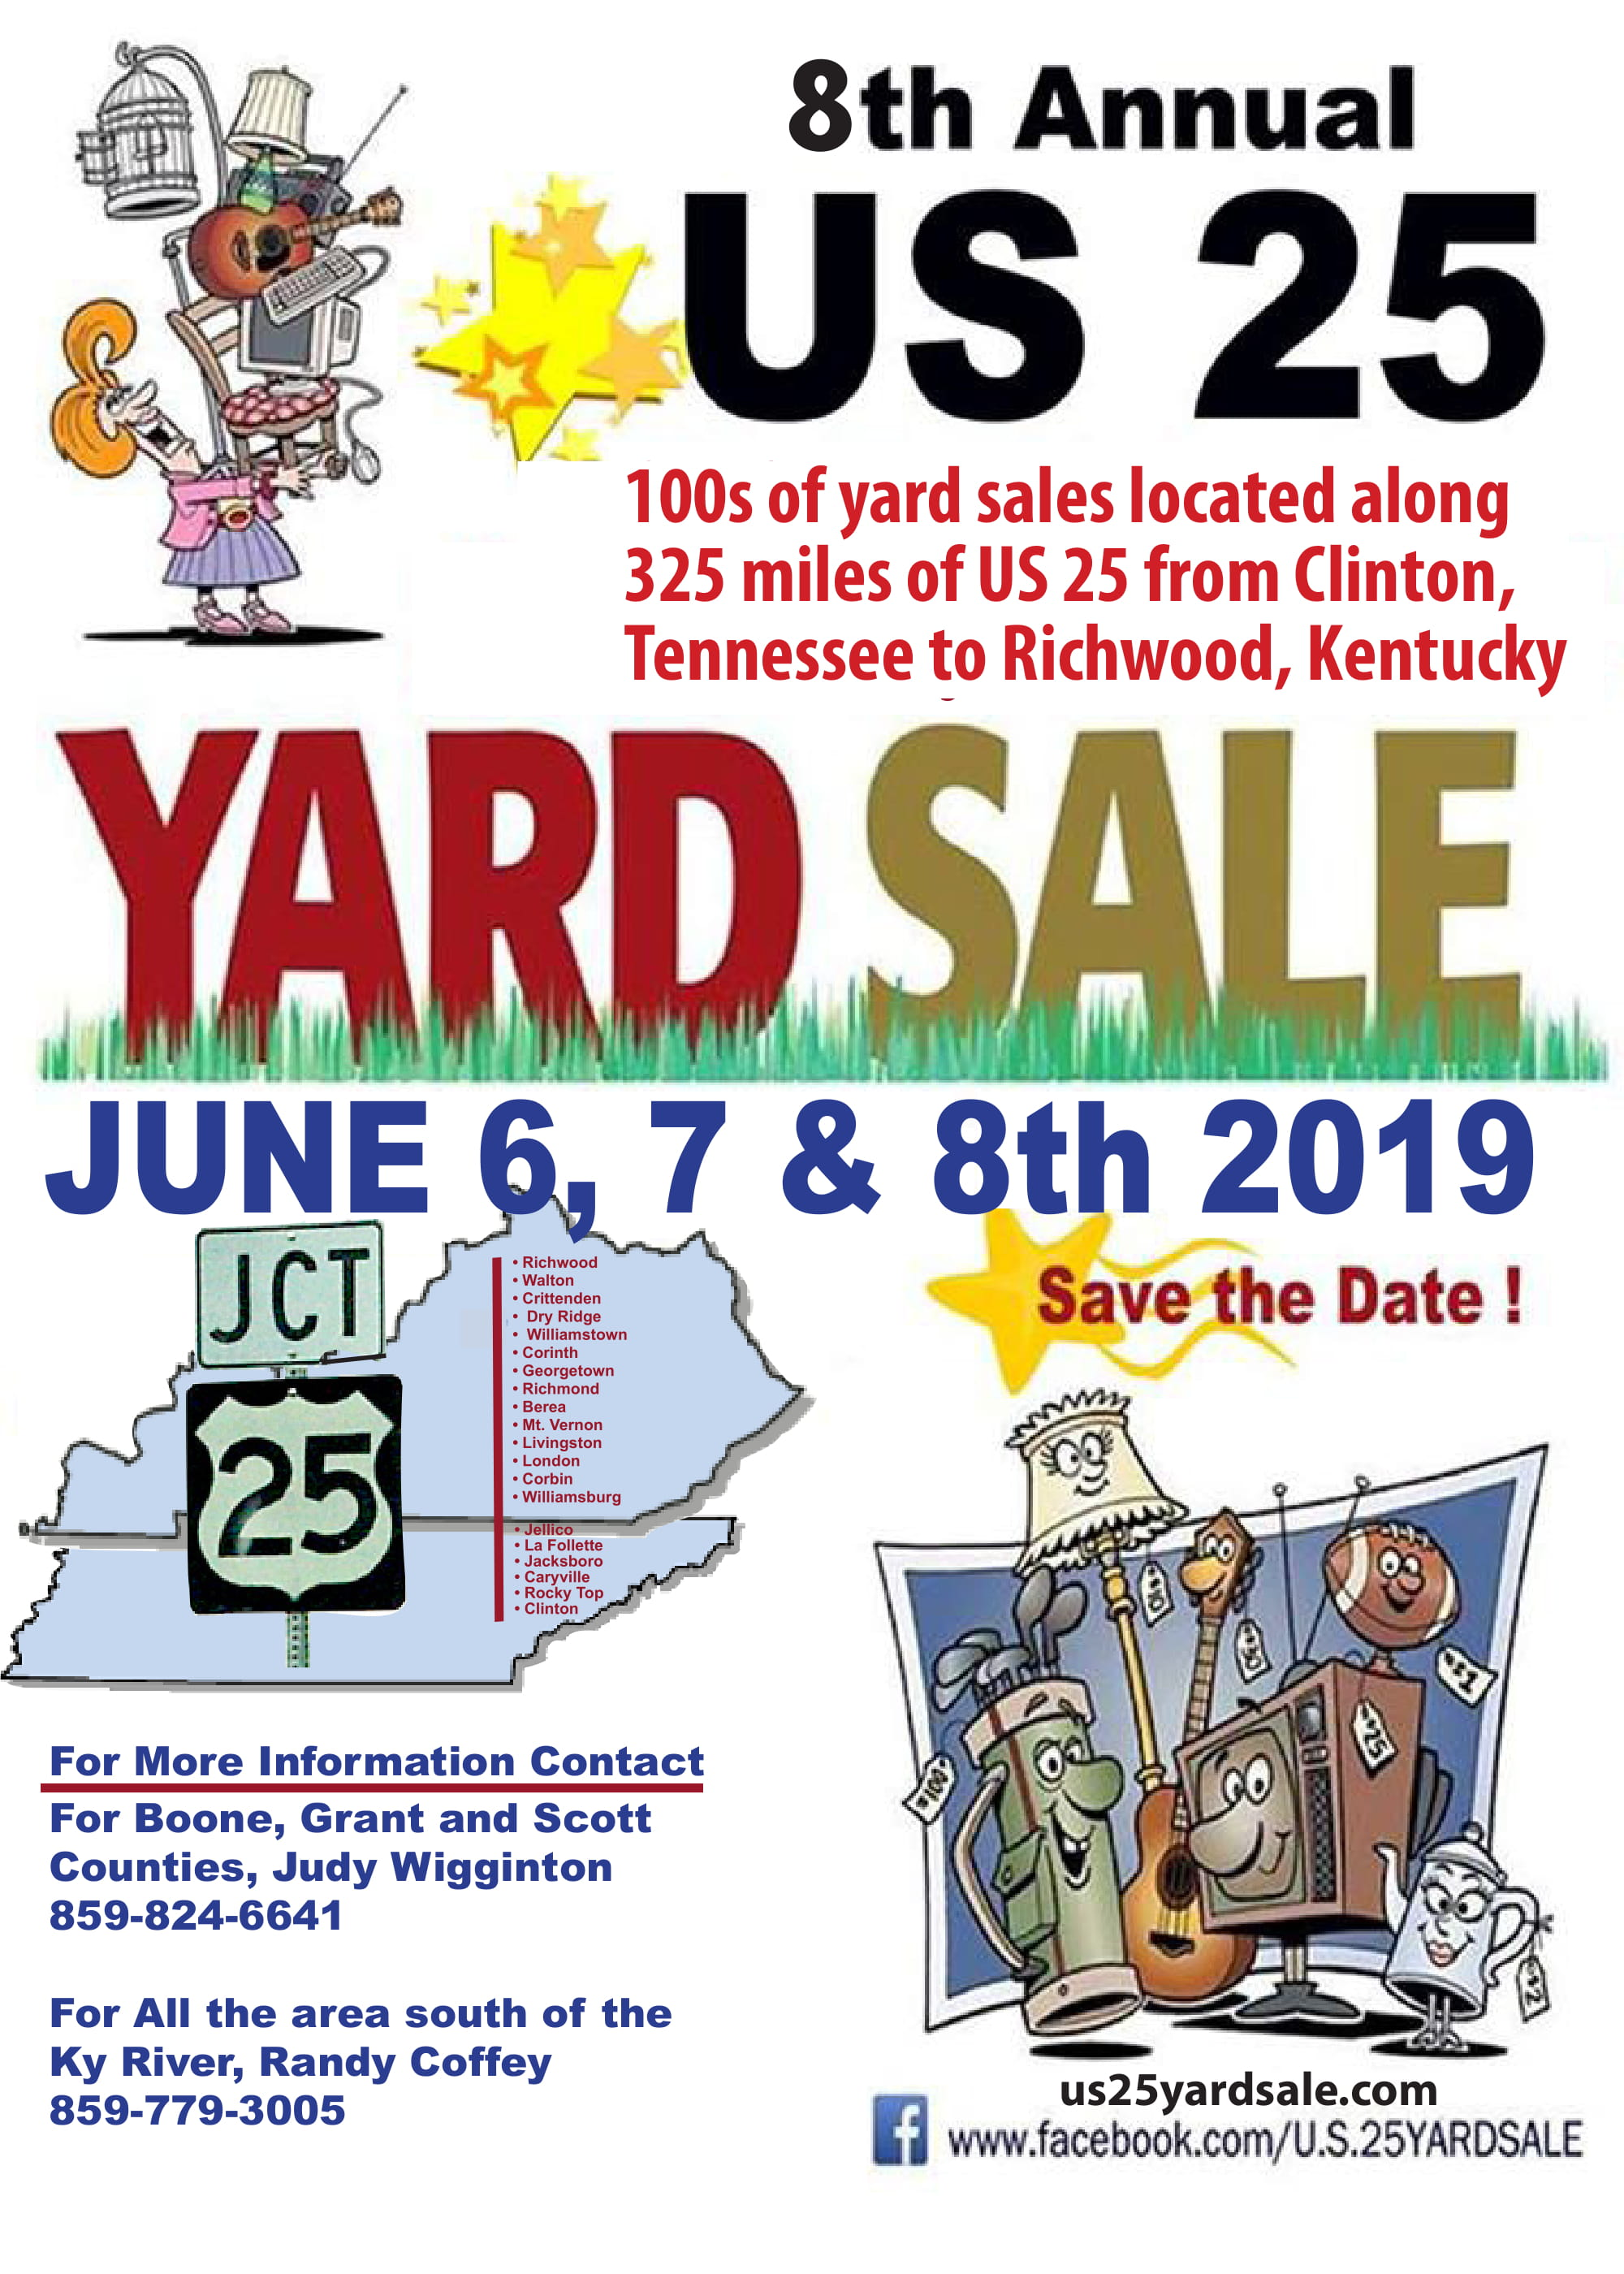 8th Annual US 25 Yard Sale